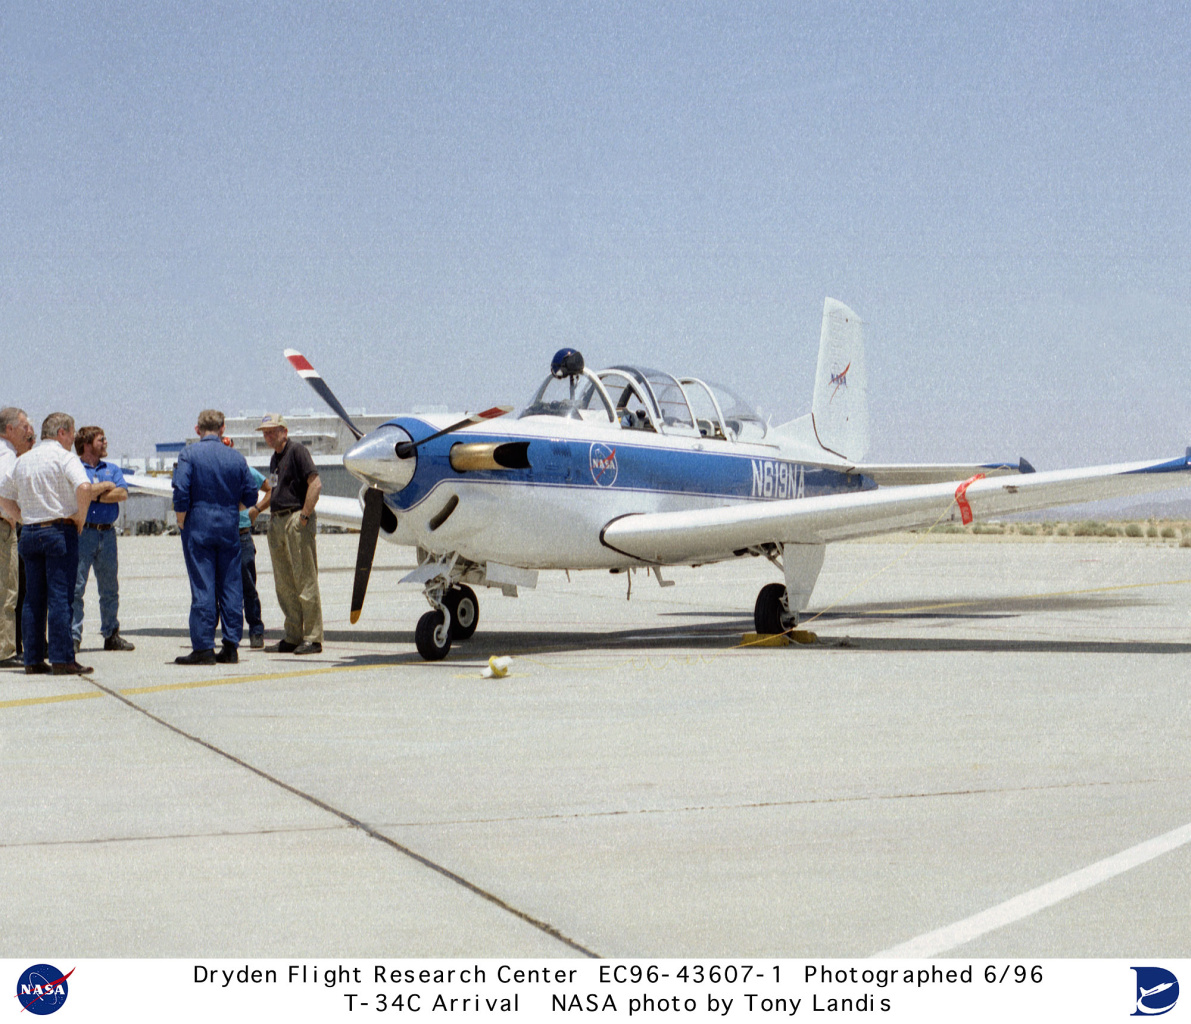 Used Turboprop: T-34C EC96-43607-1: NASA T-34C Arrival At Dryden